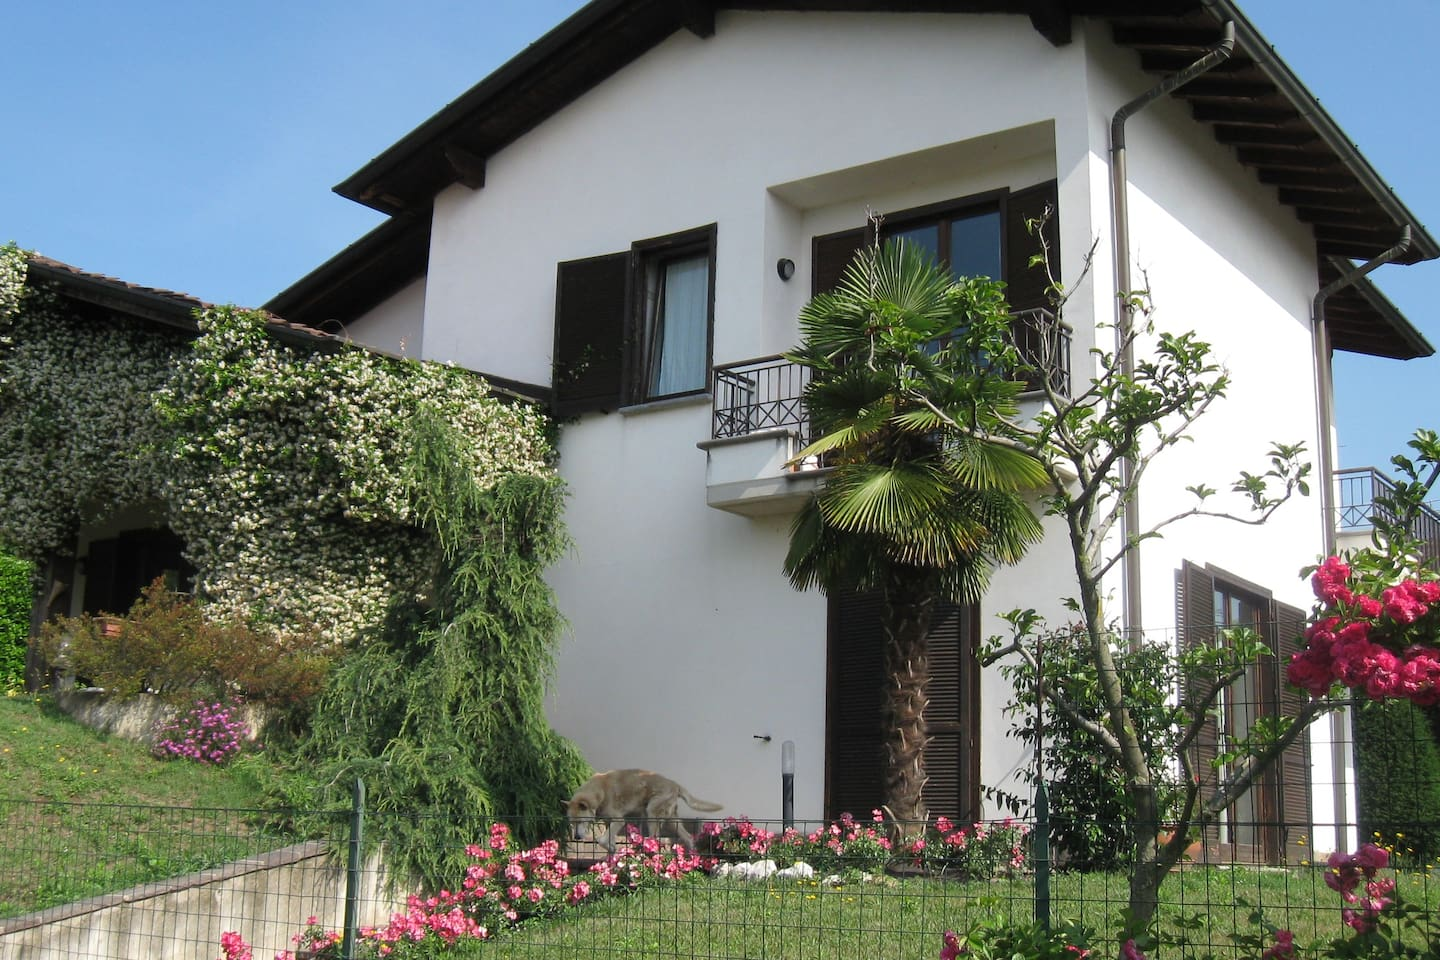 Rent a room at the Villa Patrizia!